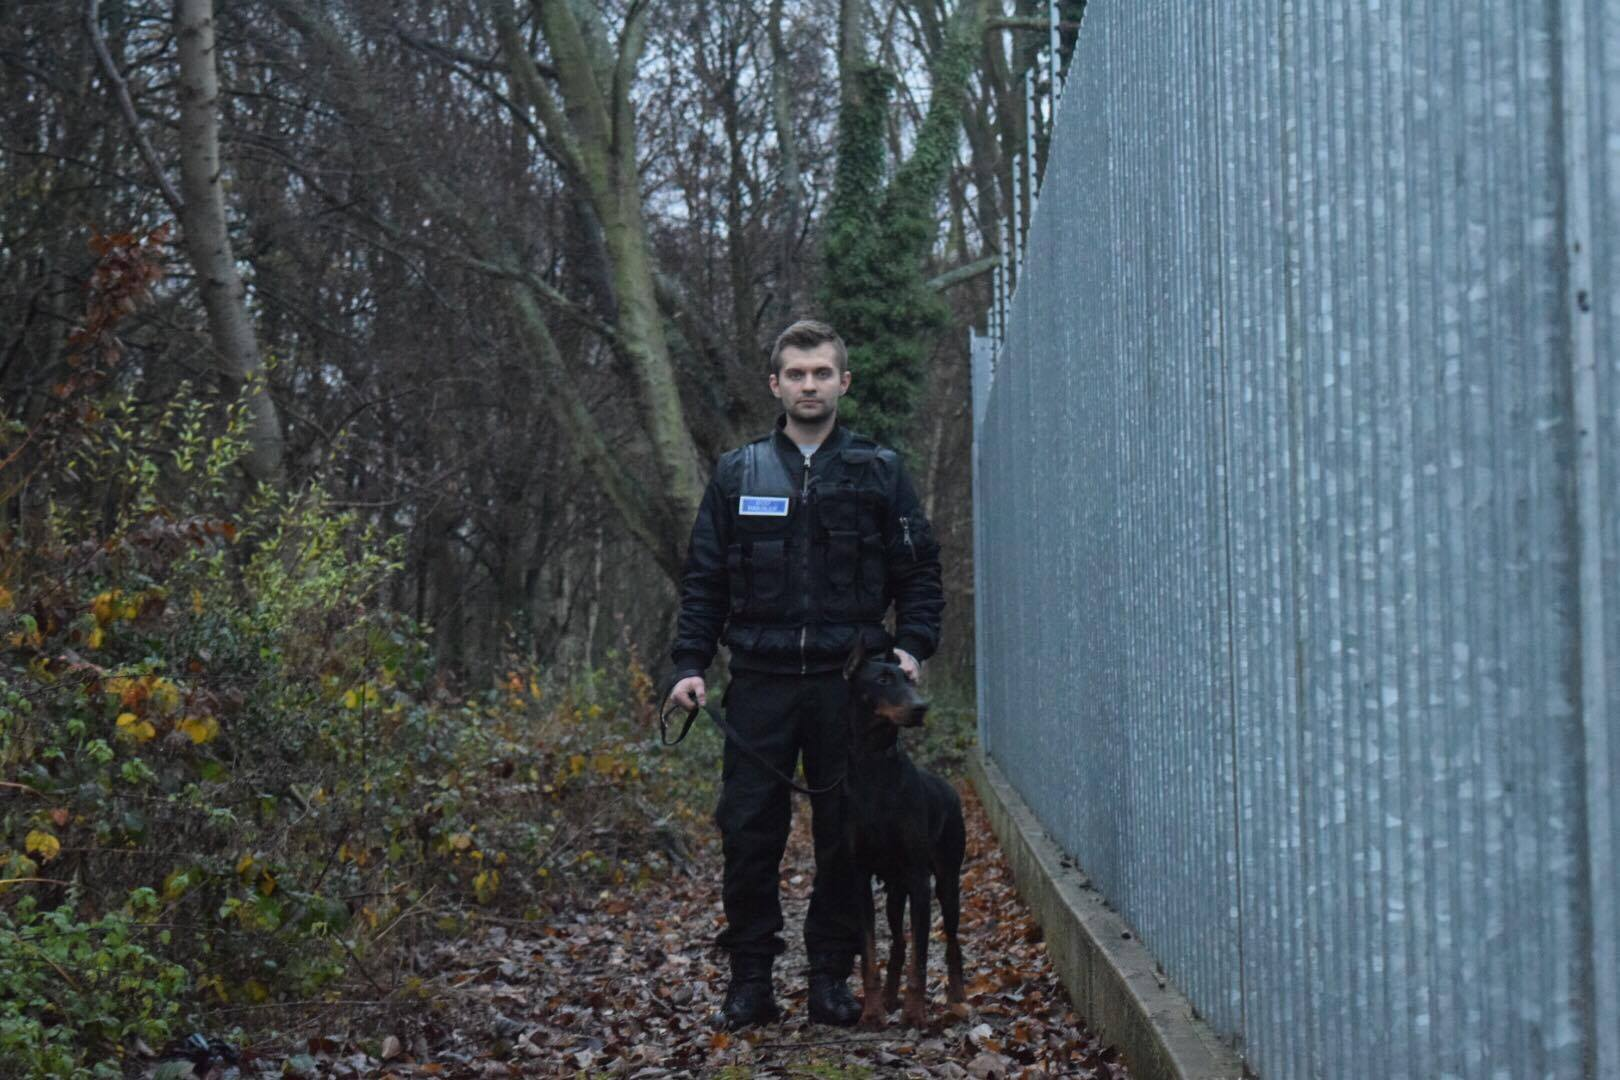 Dog handlers | security k9